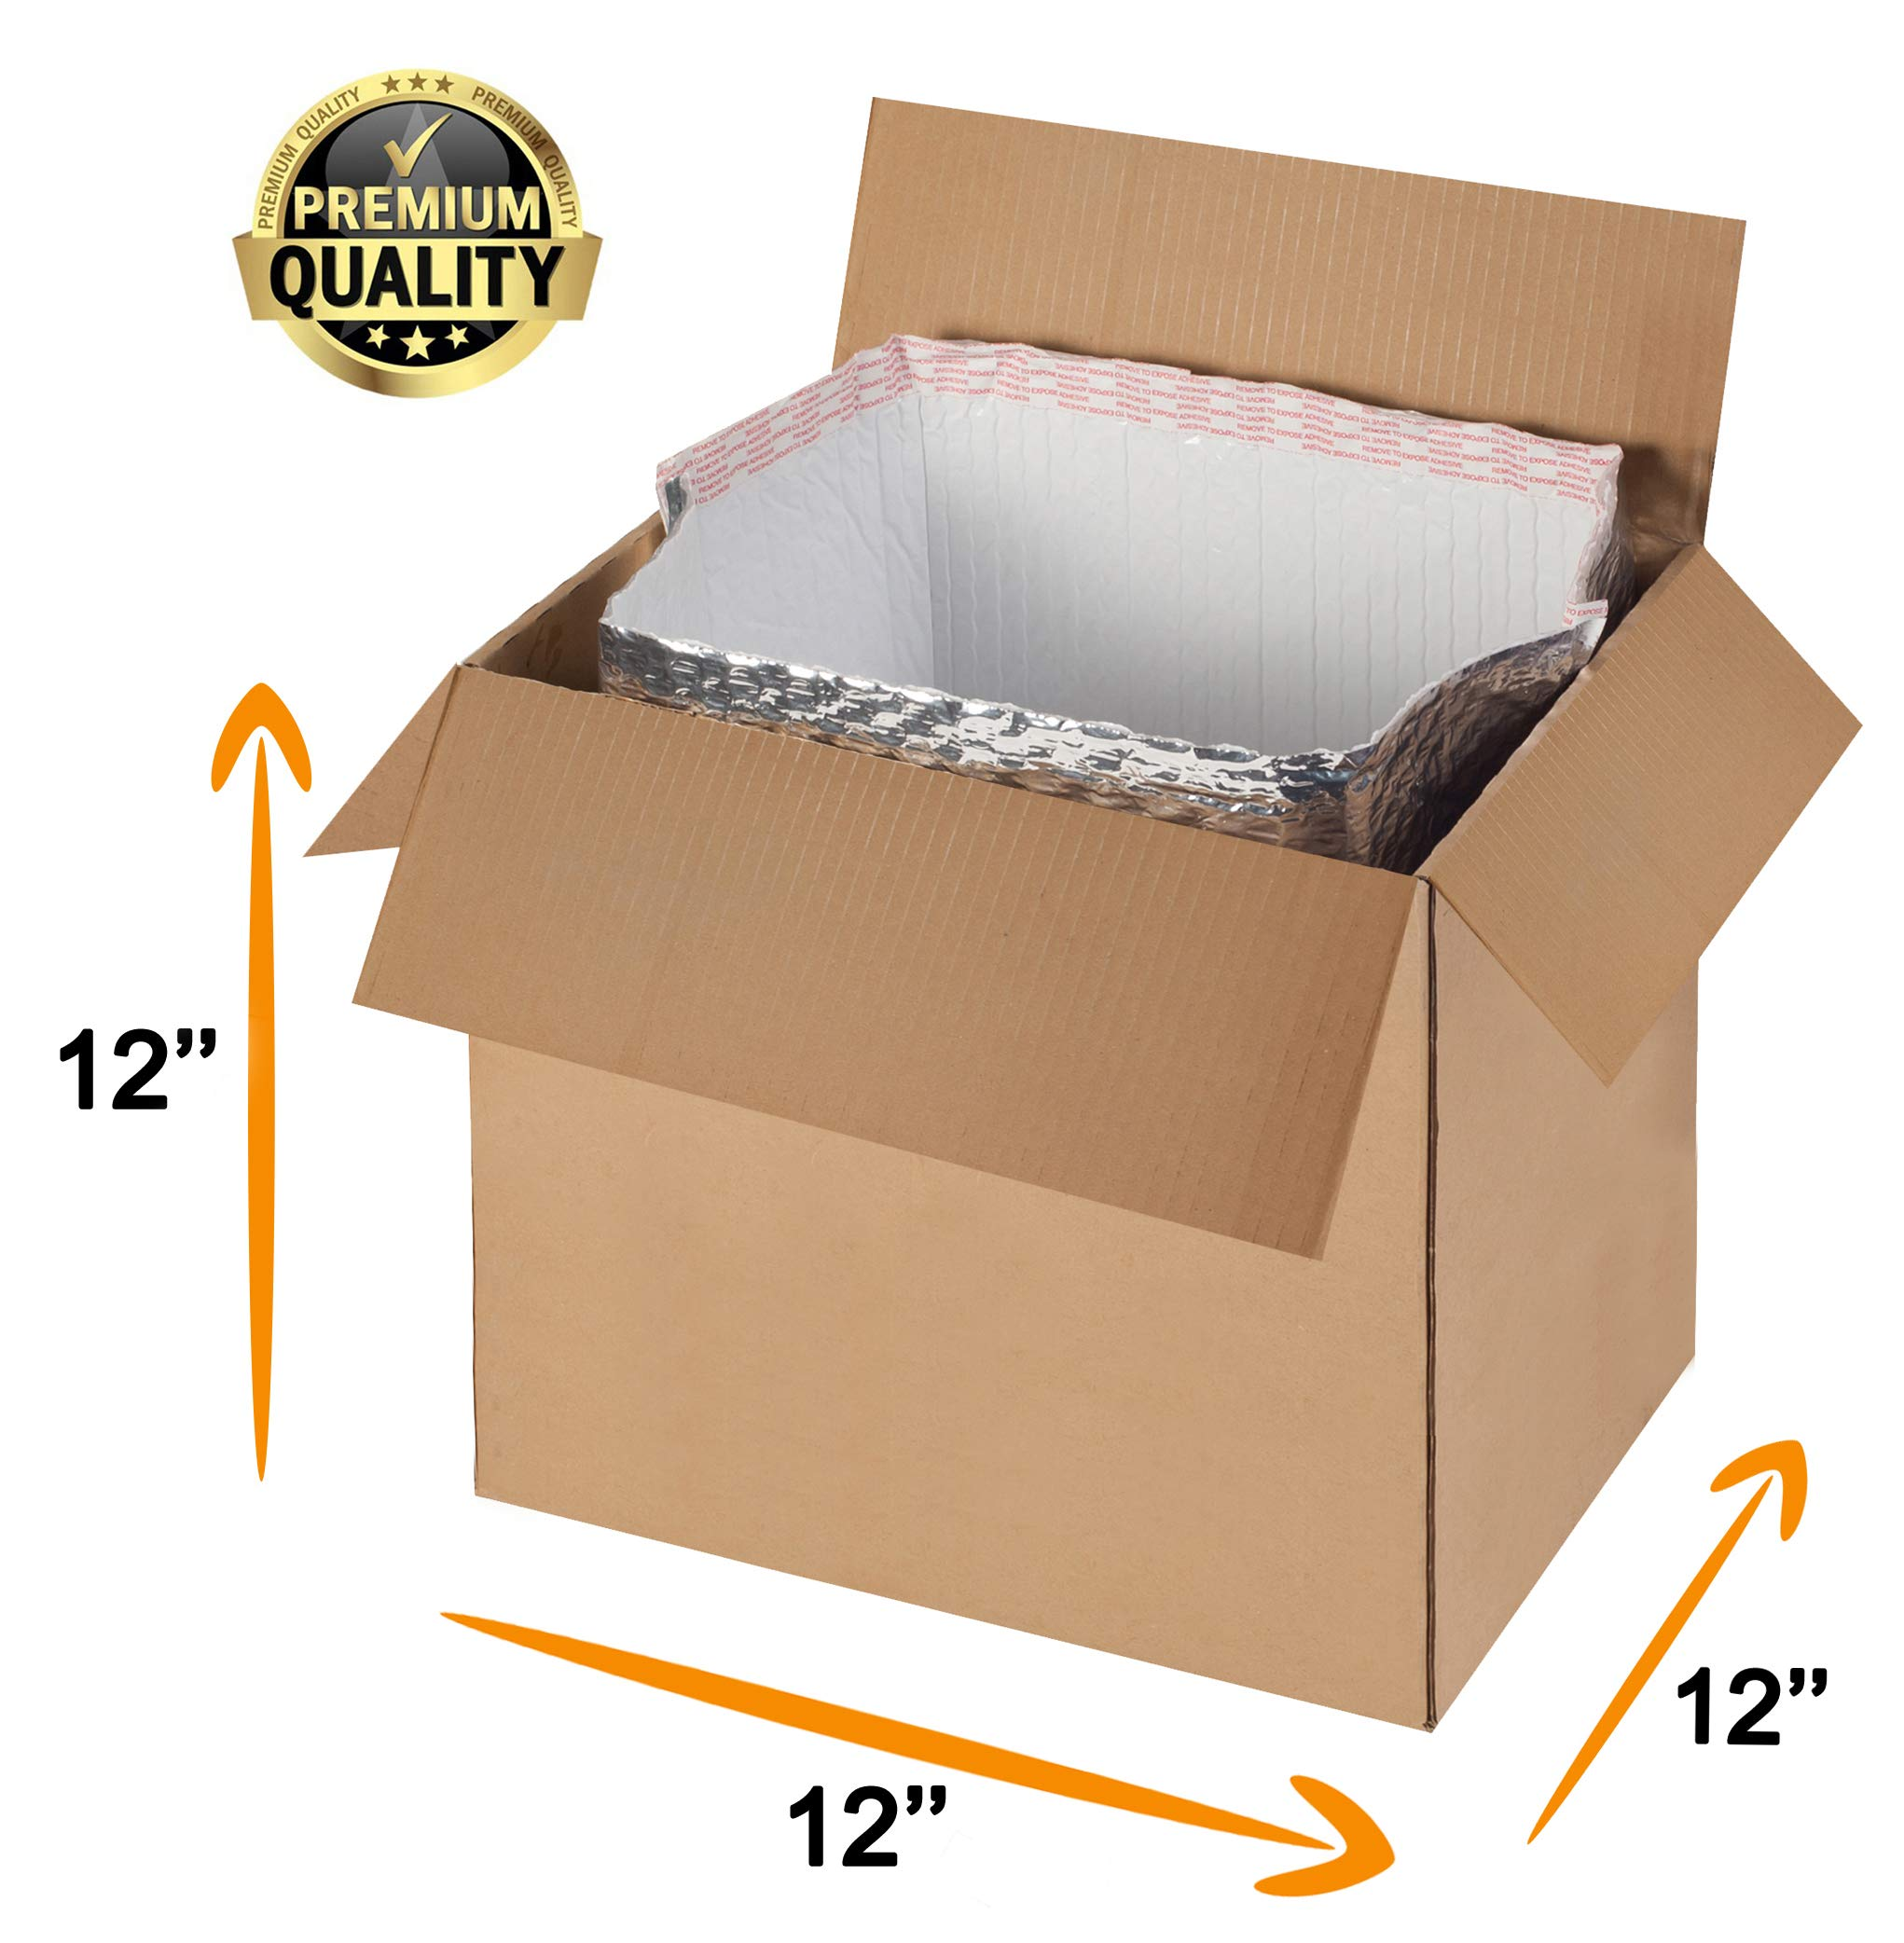 Pack of 5 Thermal Bubble Box Liners. Box Size 12 x 12 x 12. Gusseted Bottom Liners. Insulated Liners for Shipping Temperature Sensitive Products. Leak Resistant. Wholesale Price. by ABC Pack & Supply (Image #2)